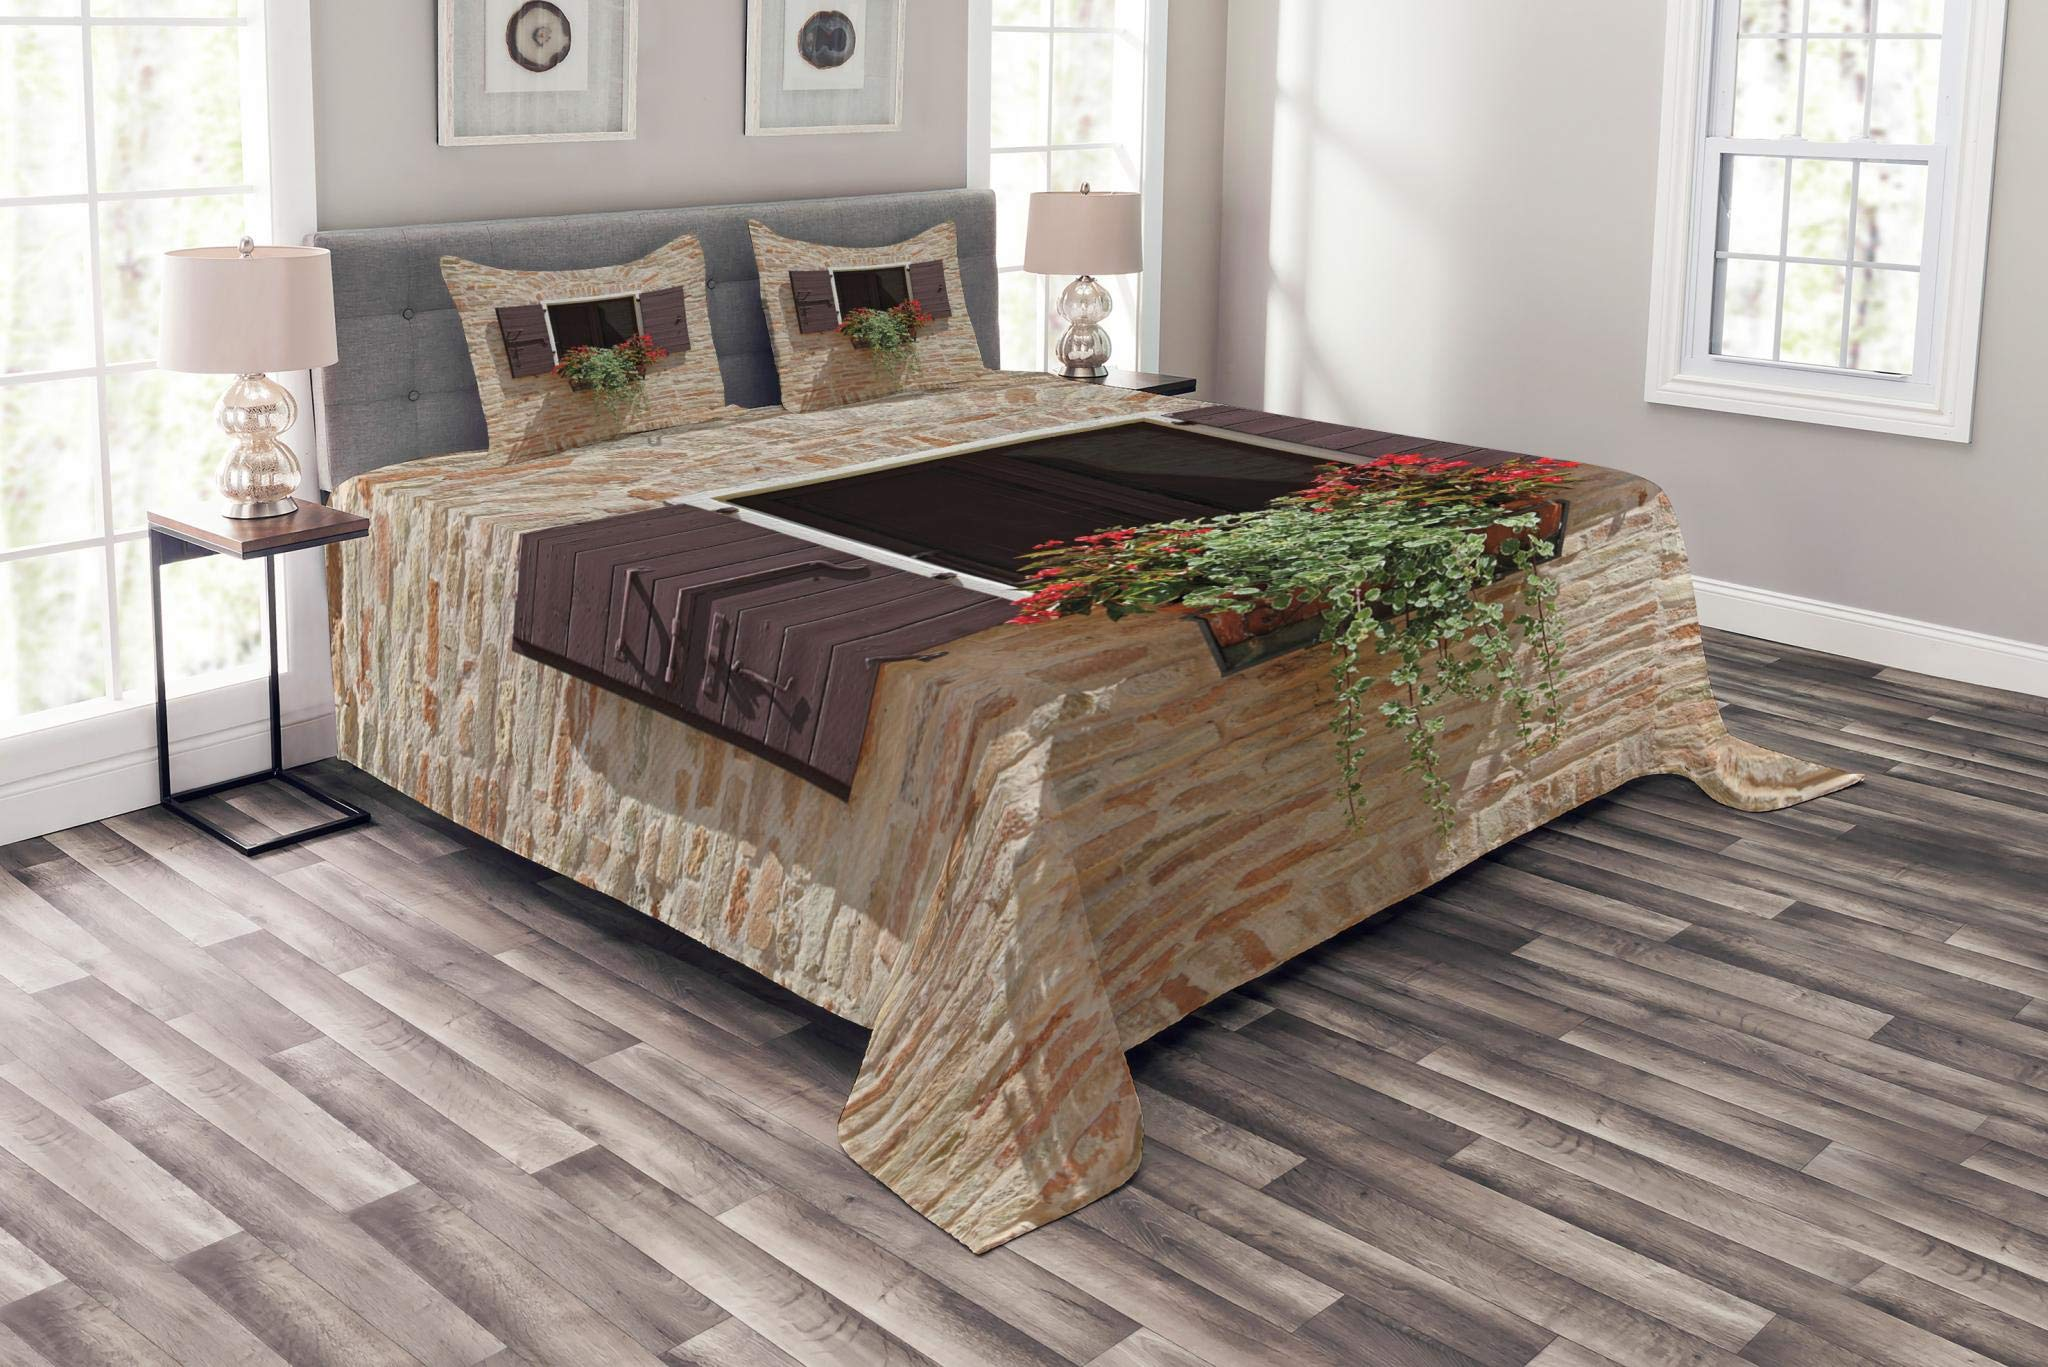 Lunarable Tuscan Bedspread Set Queen Size, Antique Looking Window on an Ancient Stone Wall With Flowers Pienza Tuscany Picture, Decorative Quilted 3 Piece Coverlet Set with 2 Pillow Shams, Brown Ivory